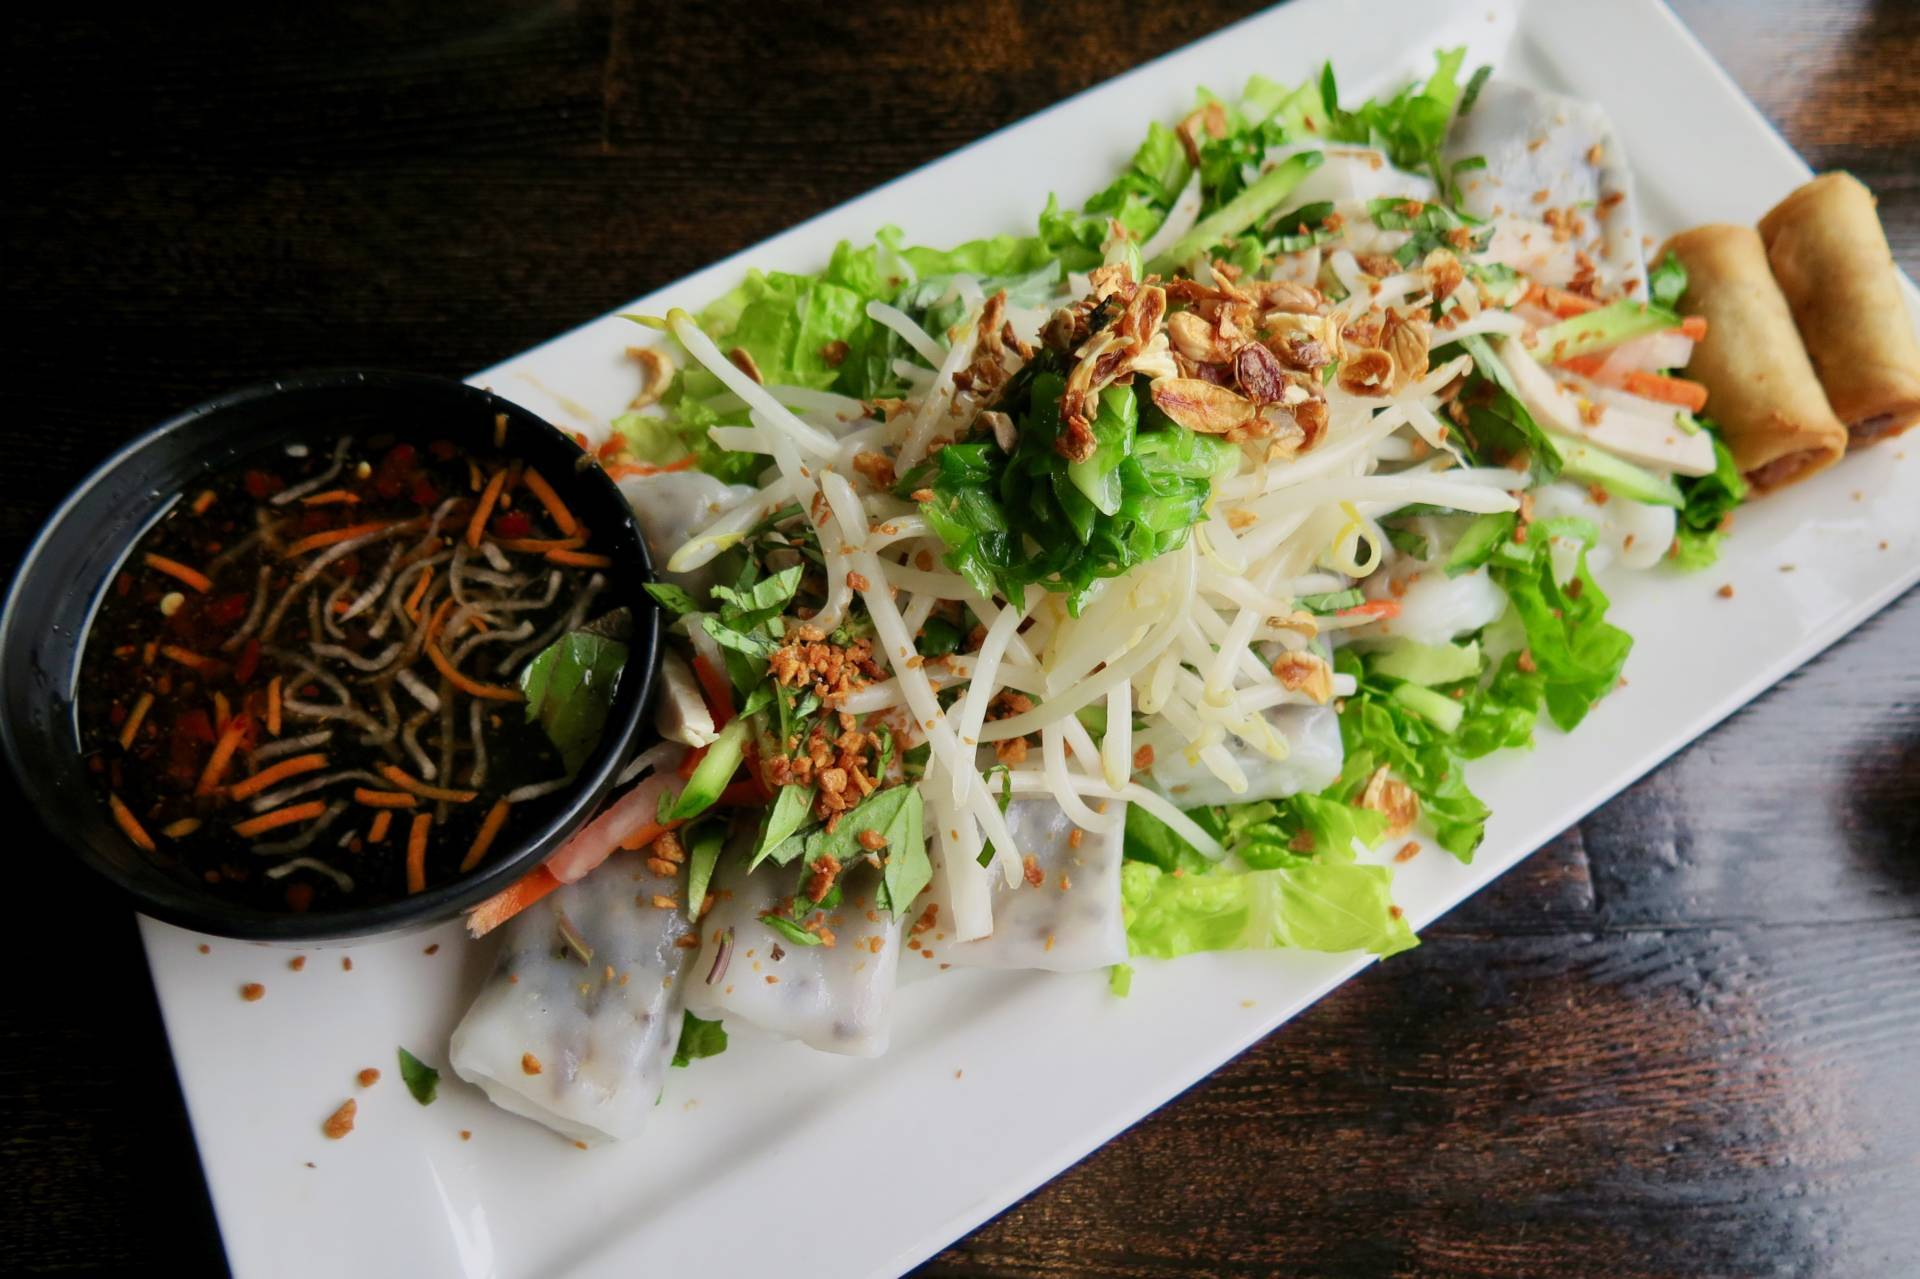 Don't miss the banh cuon, a special dish only on Tuezday Noodz Day.